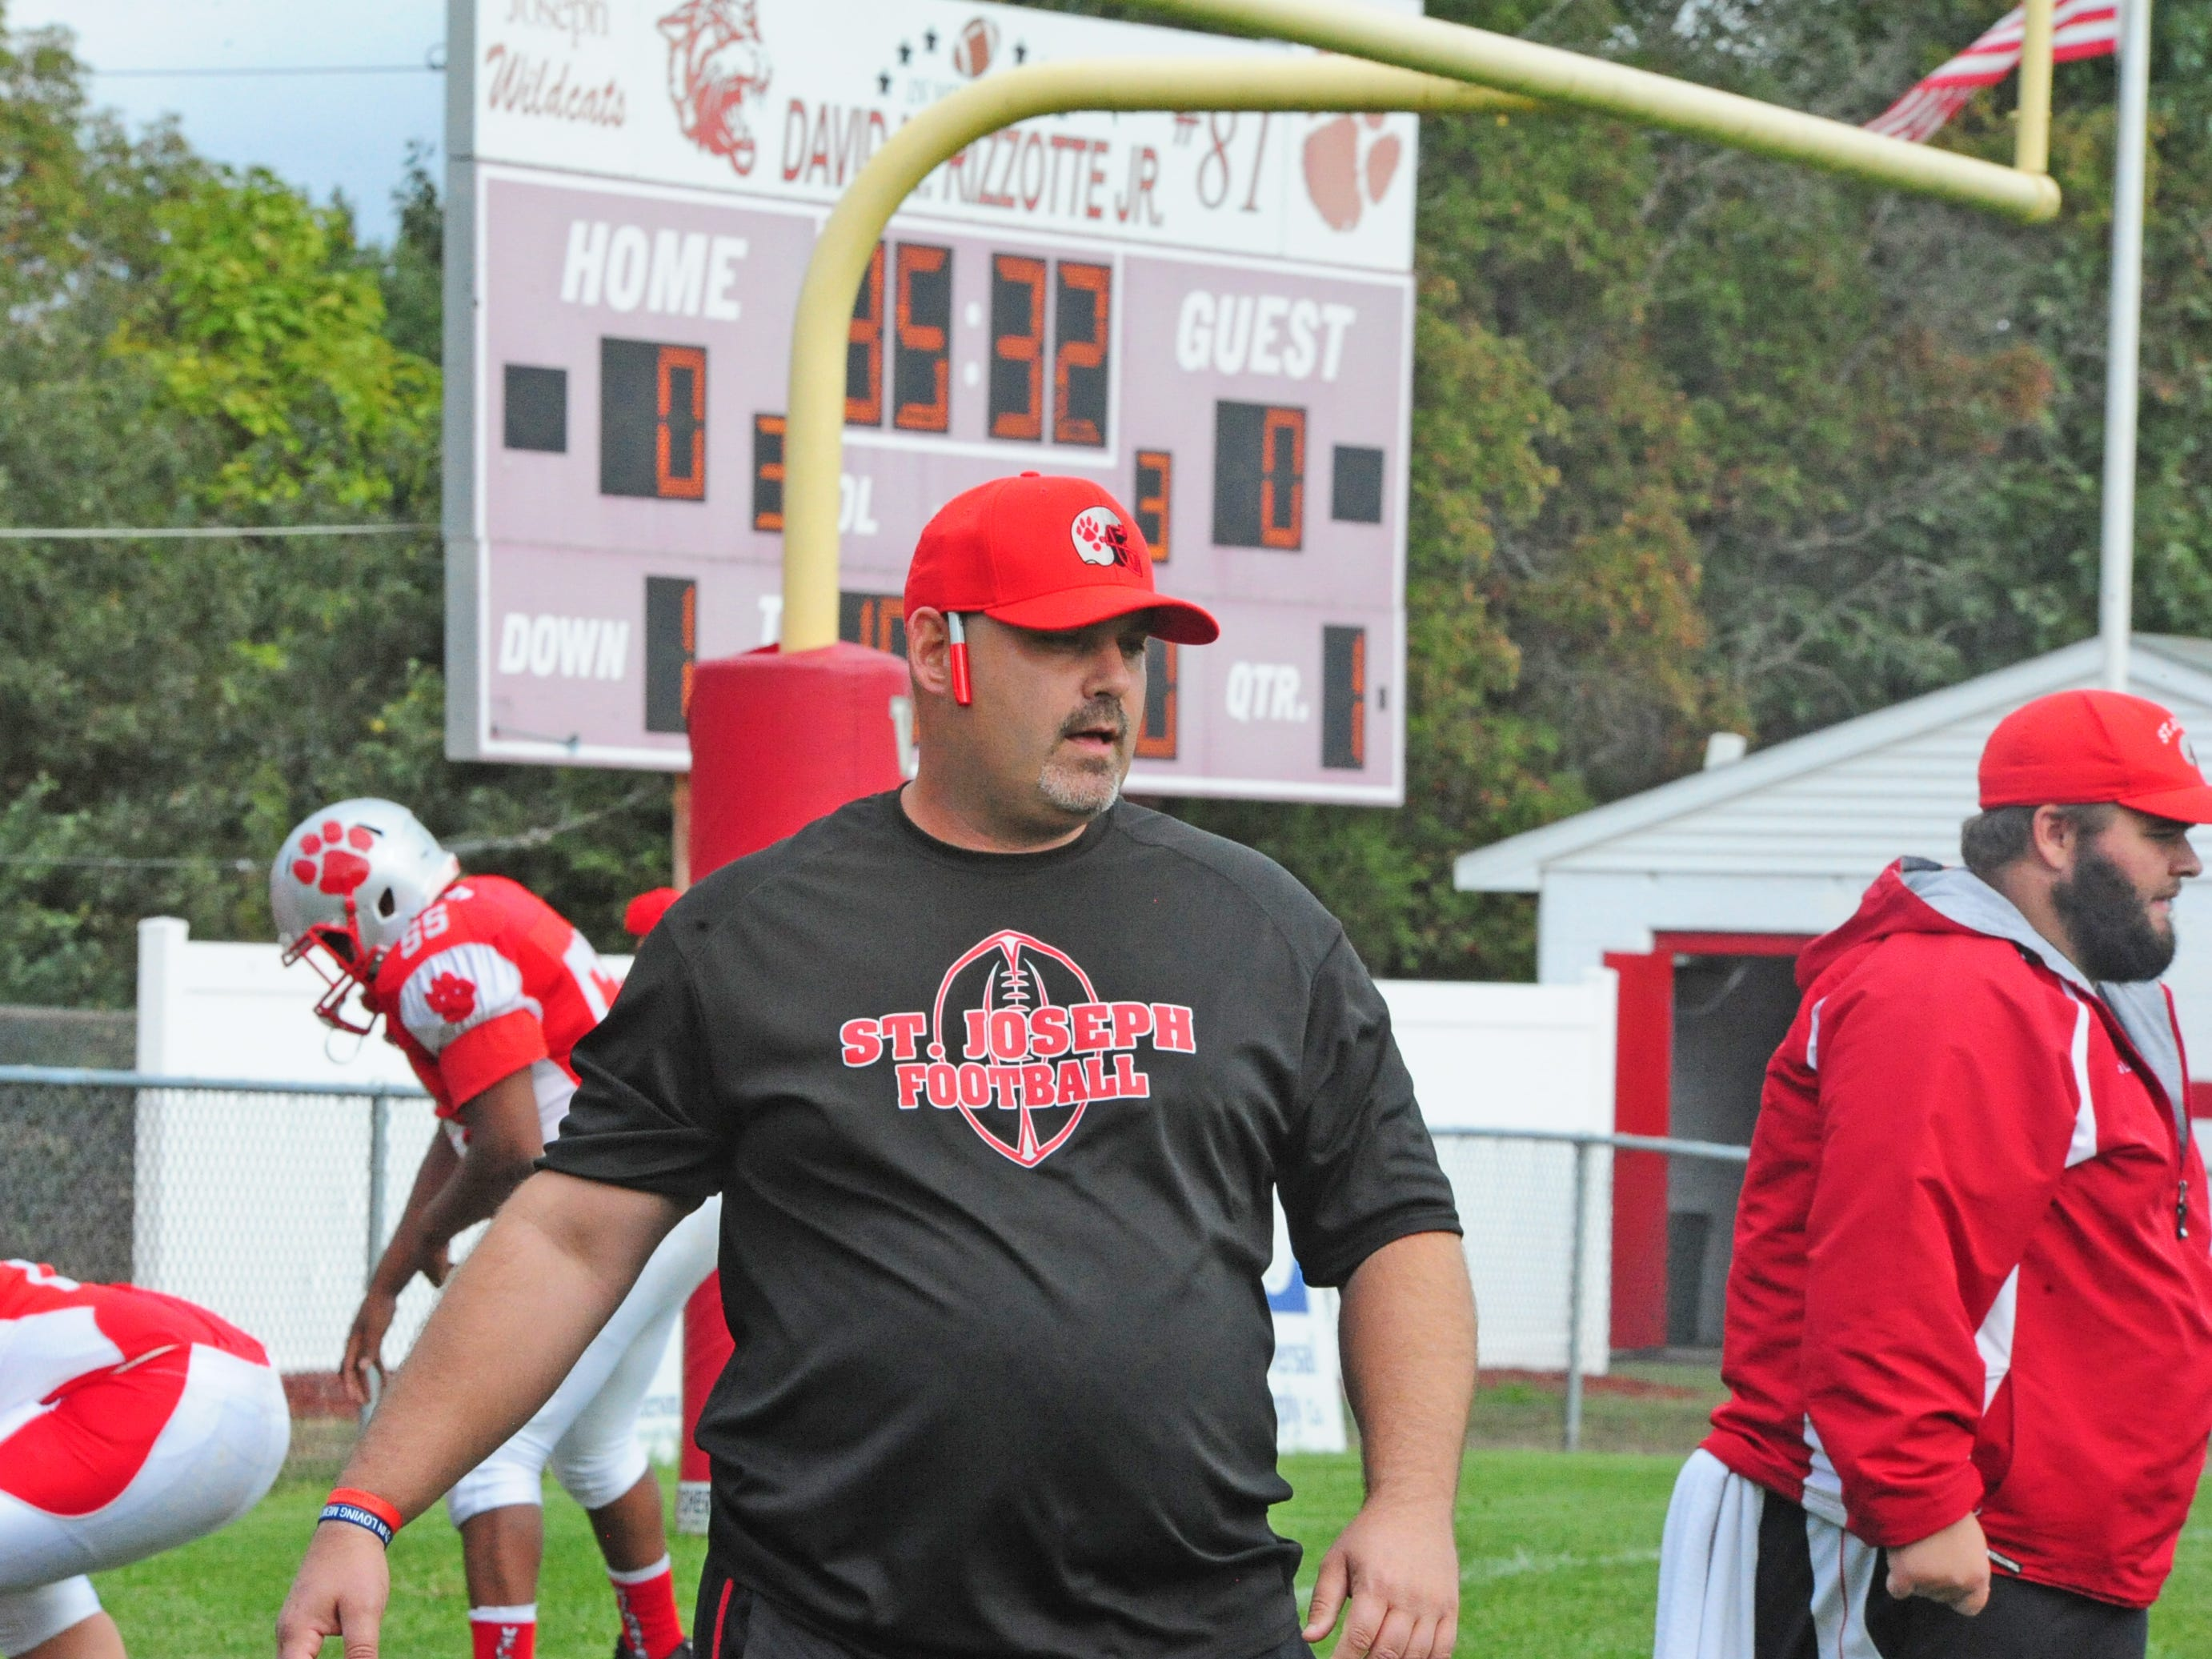 St. Joseph interim coach Rick Mauriello watches his team warm up before playing West Deptford in Hammonton on Saturday, October 13, 2018.